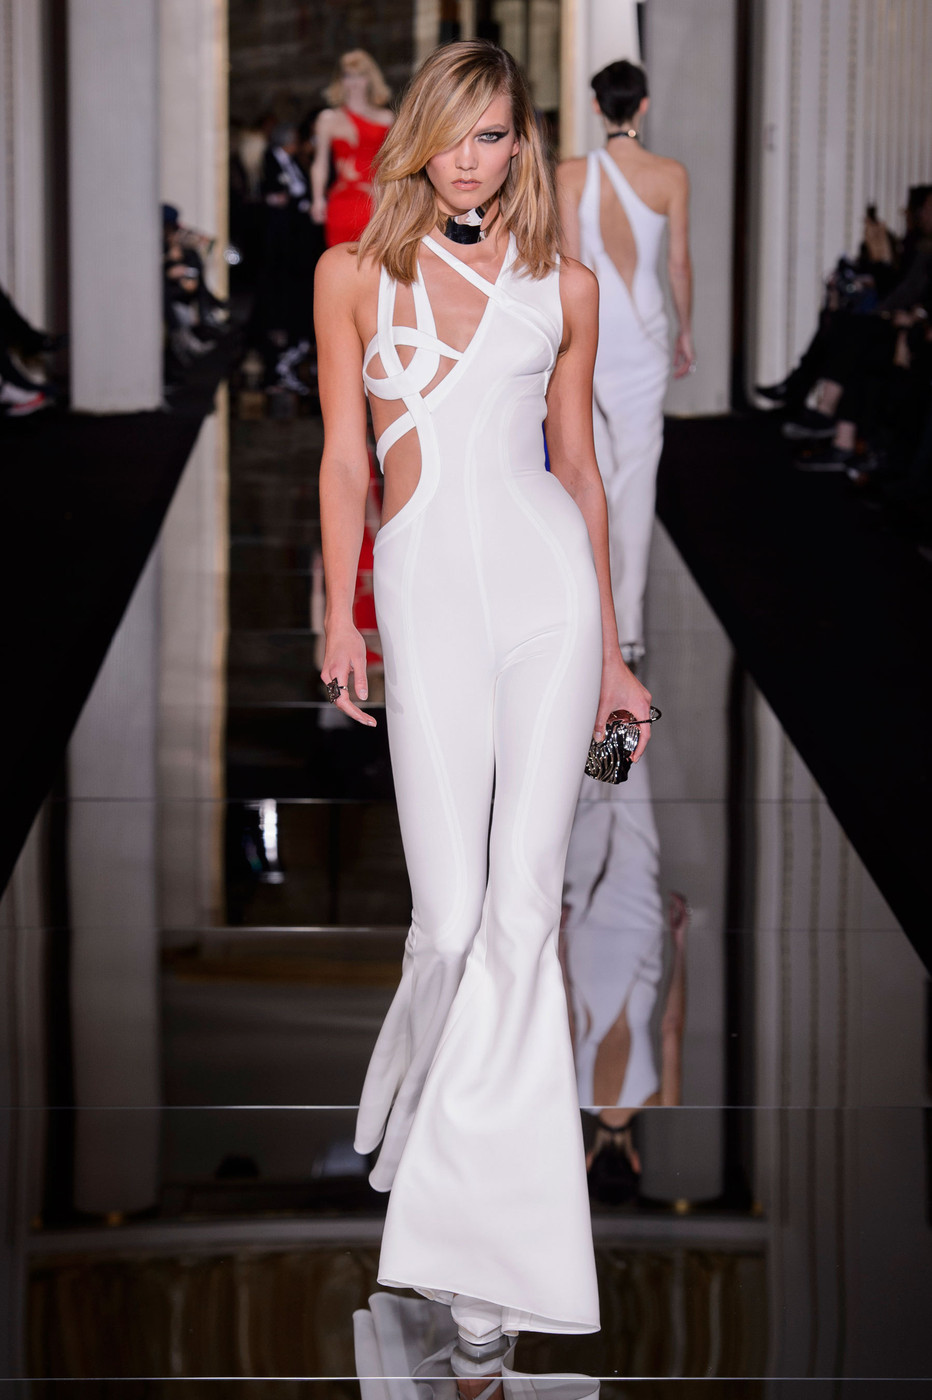 Karlie Kloss nearly bares her modesty during Atelier Versace show